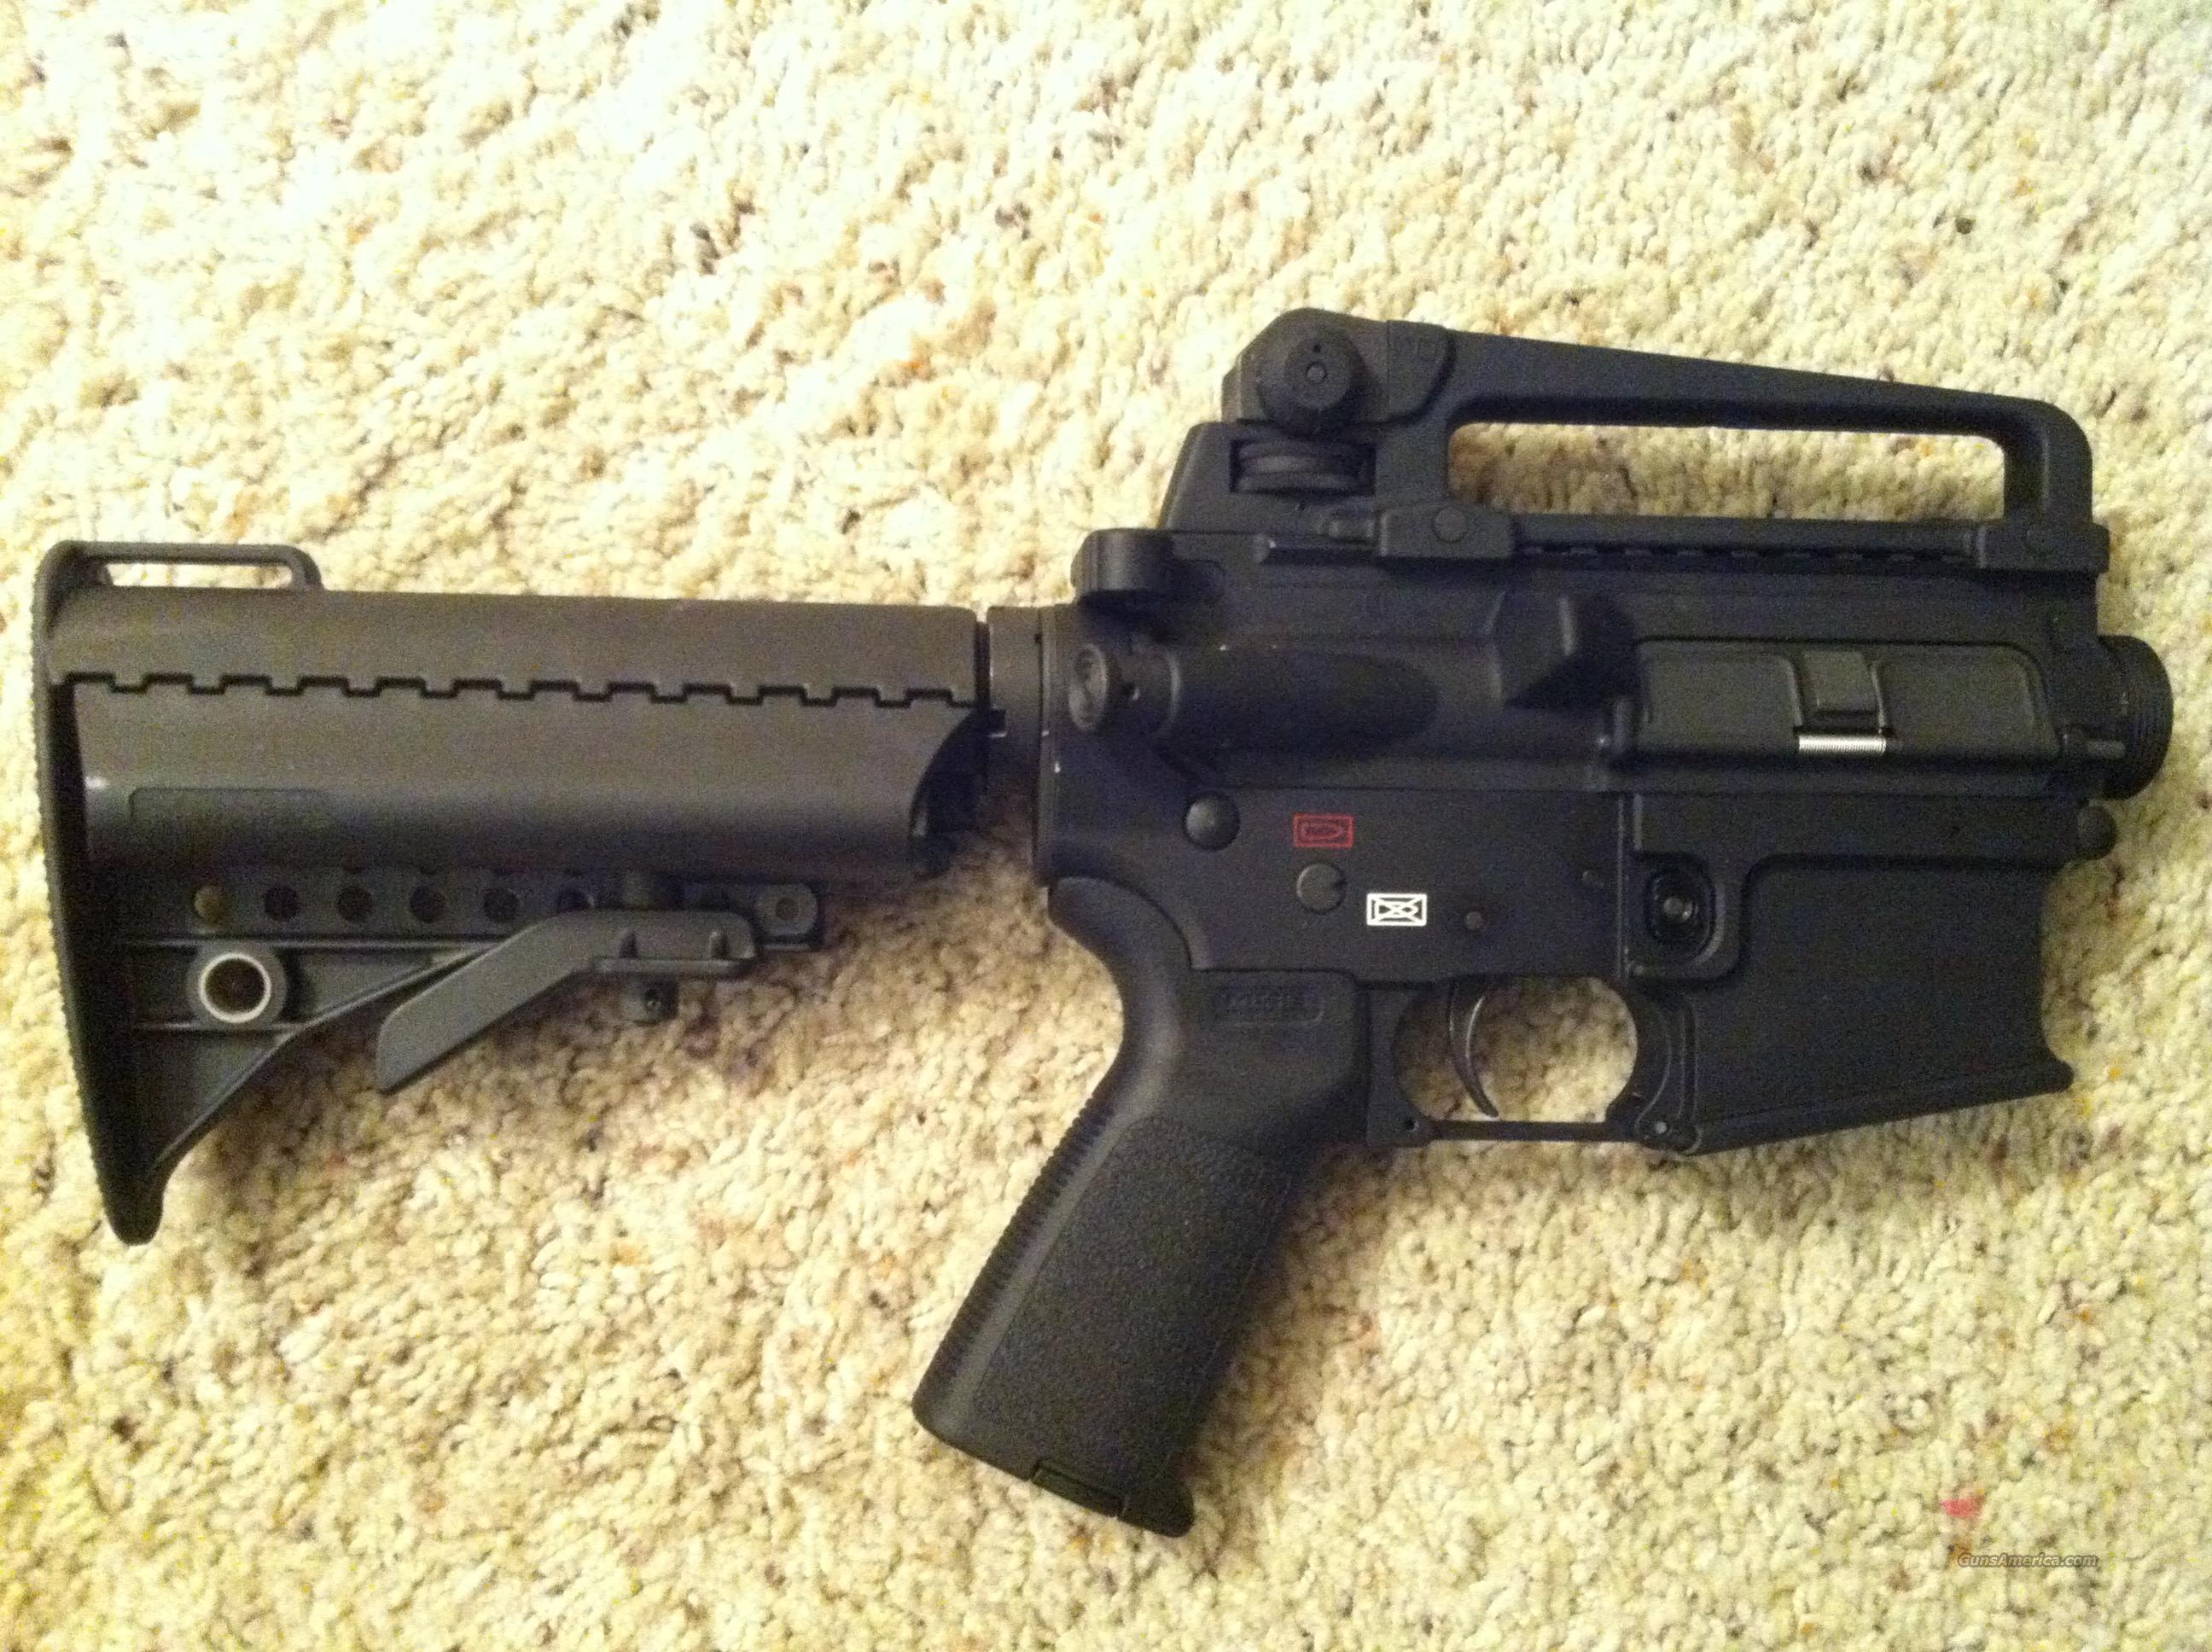 AR-15/M4 Lower Receiver and Extras  Guns > Rifles > AR-15 Rifles - Small Manufacturers > Lower Only